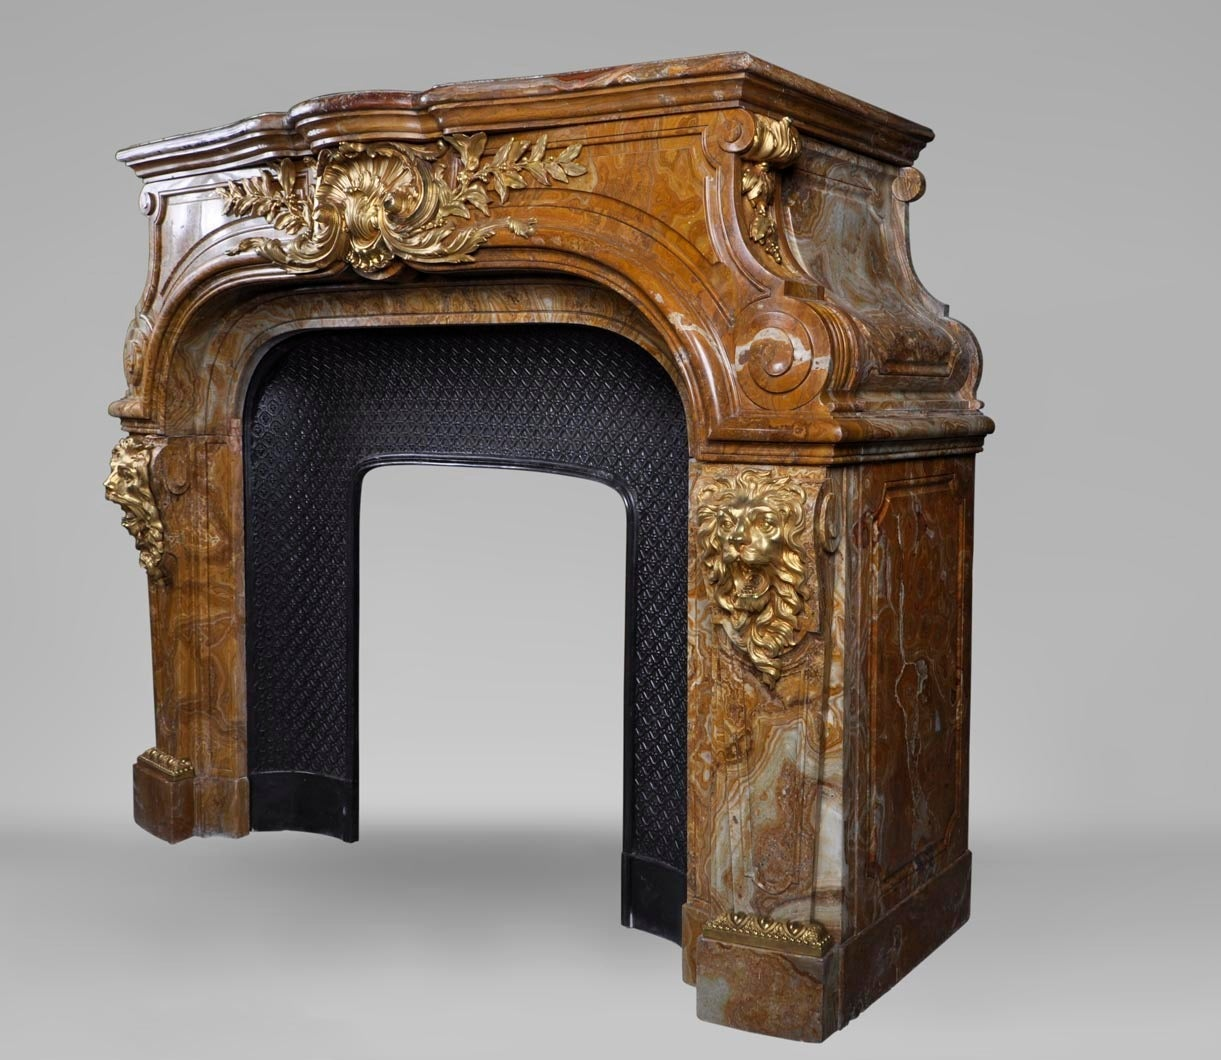 Louis XIV Style Fireplace in Alabastro di Busca with Gilded Bronze 5